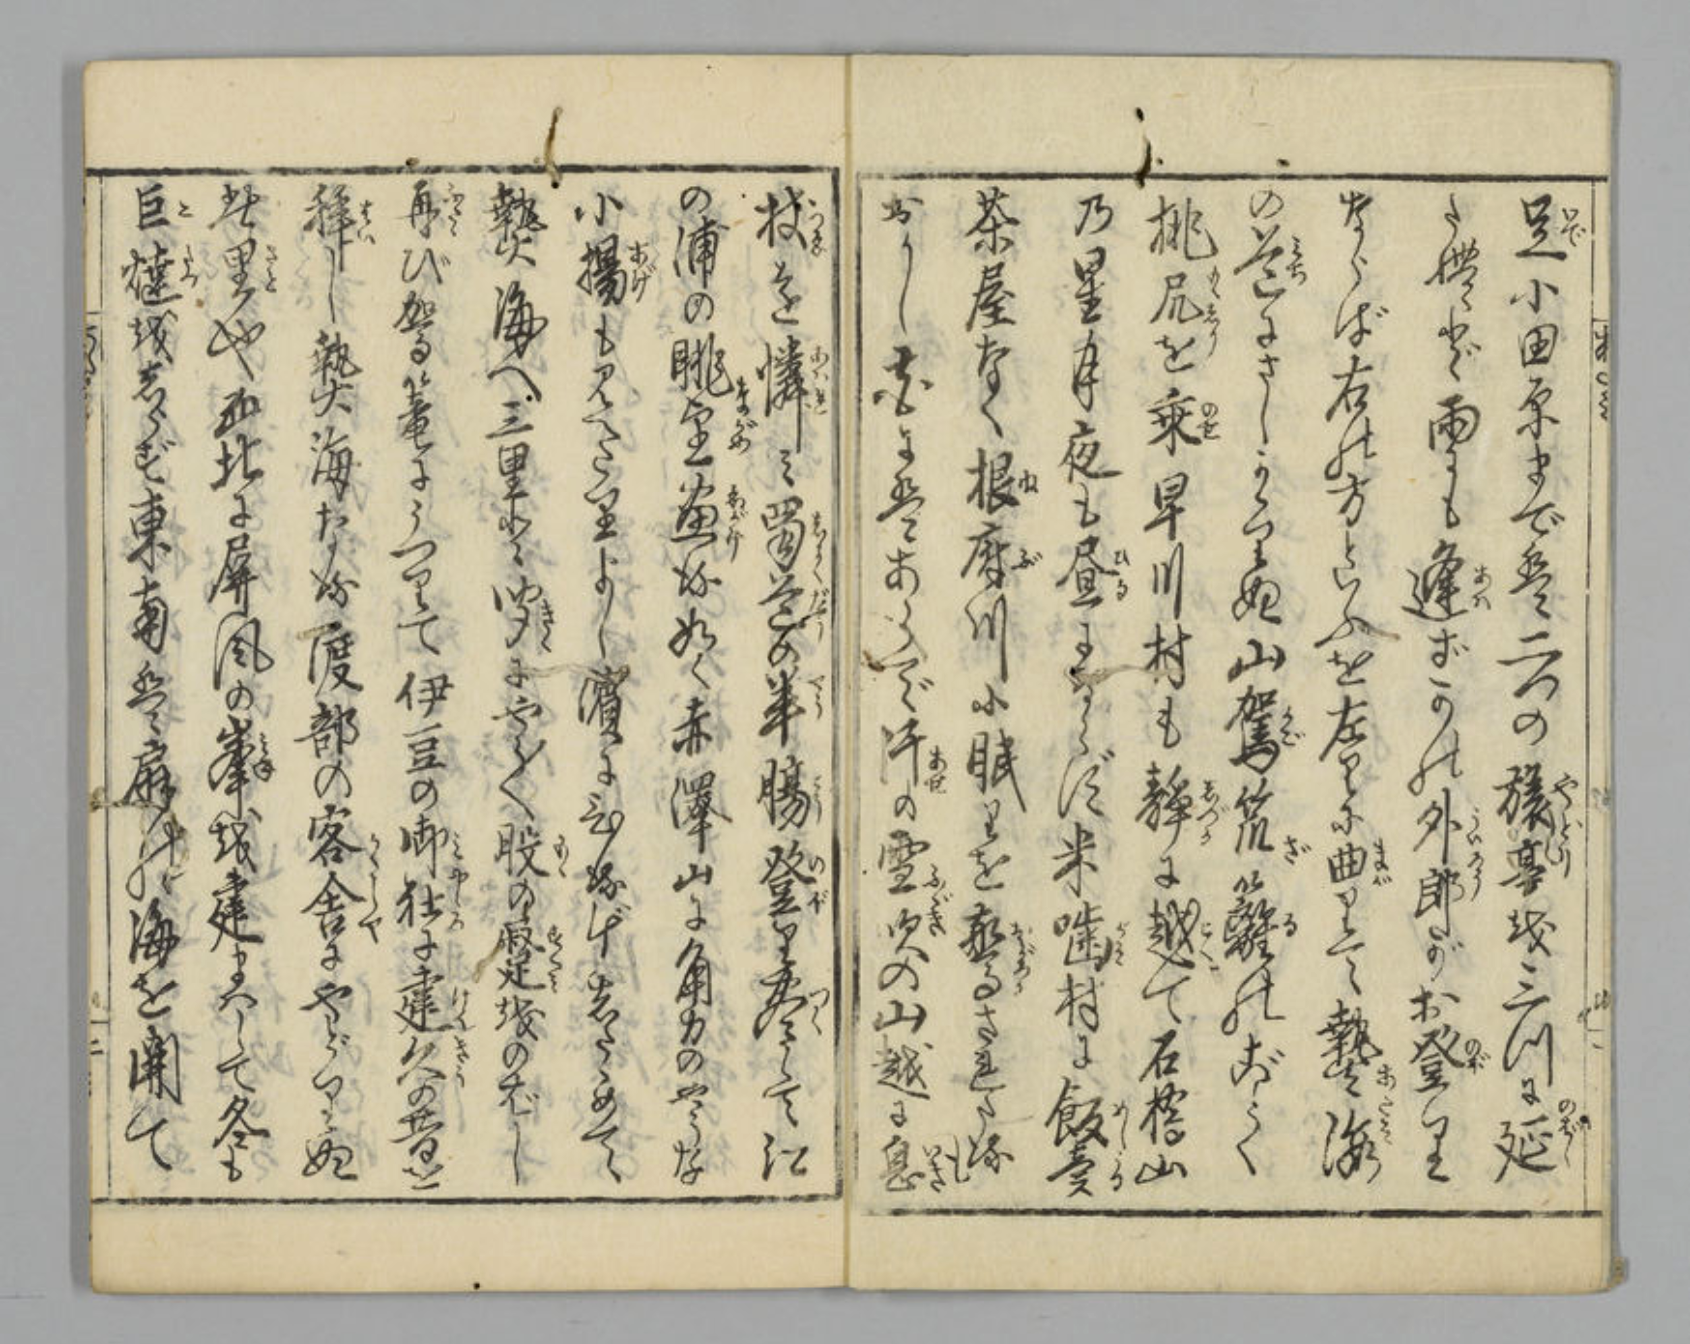 An example of two digitized pages in a book from the Ishimoto Collection